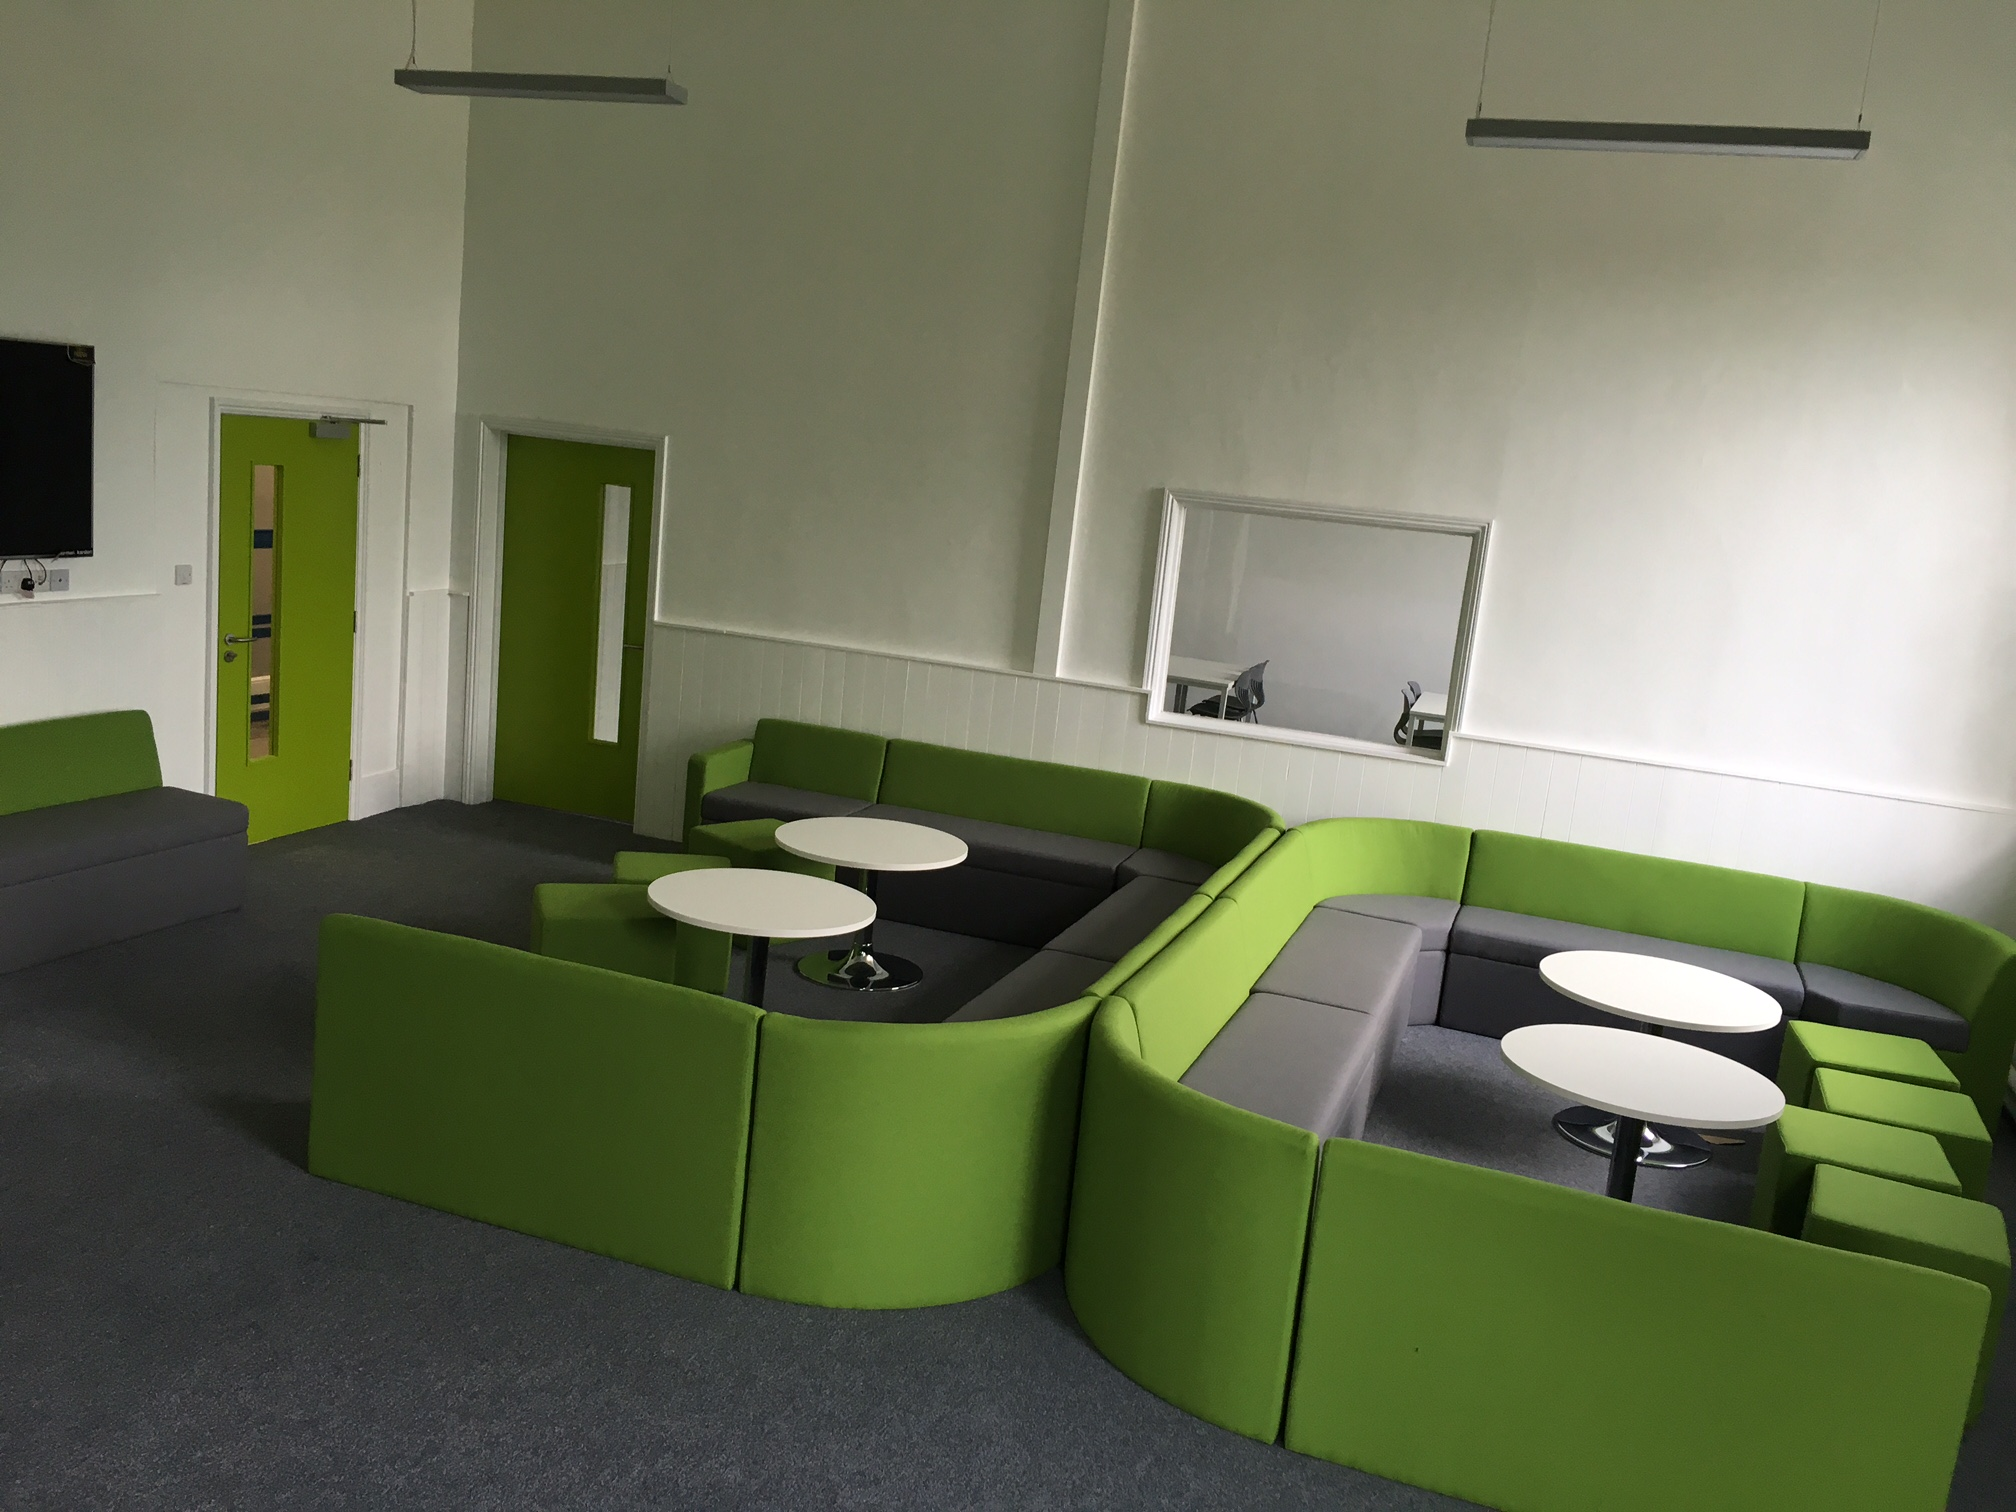 Far Soft Seating Green and Grey in Common Room